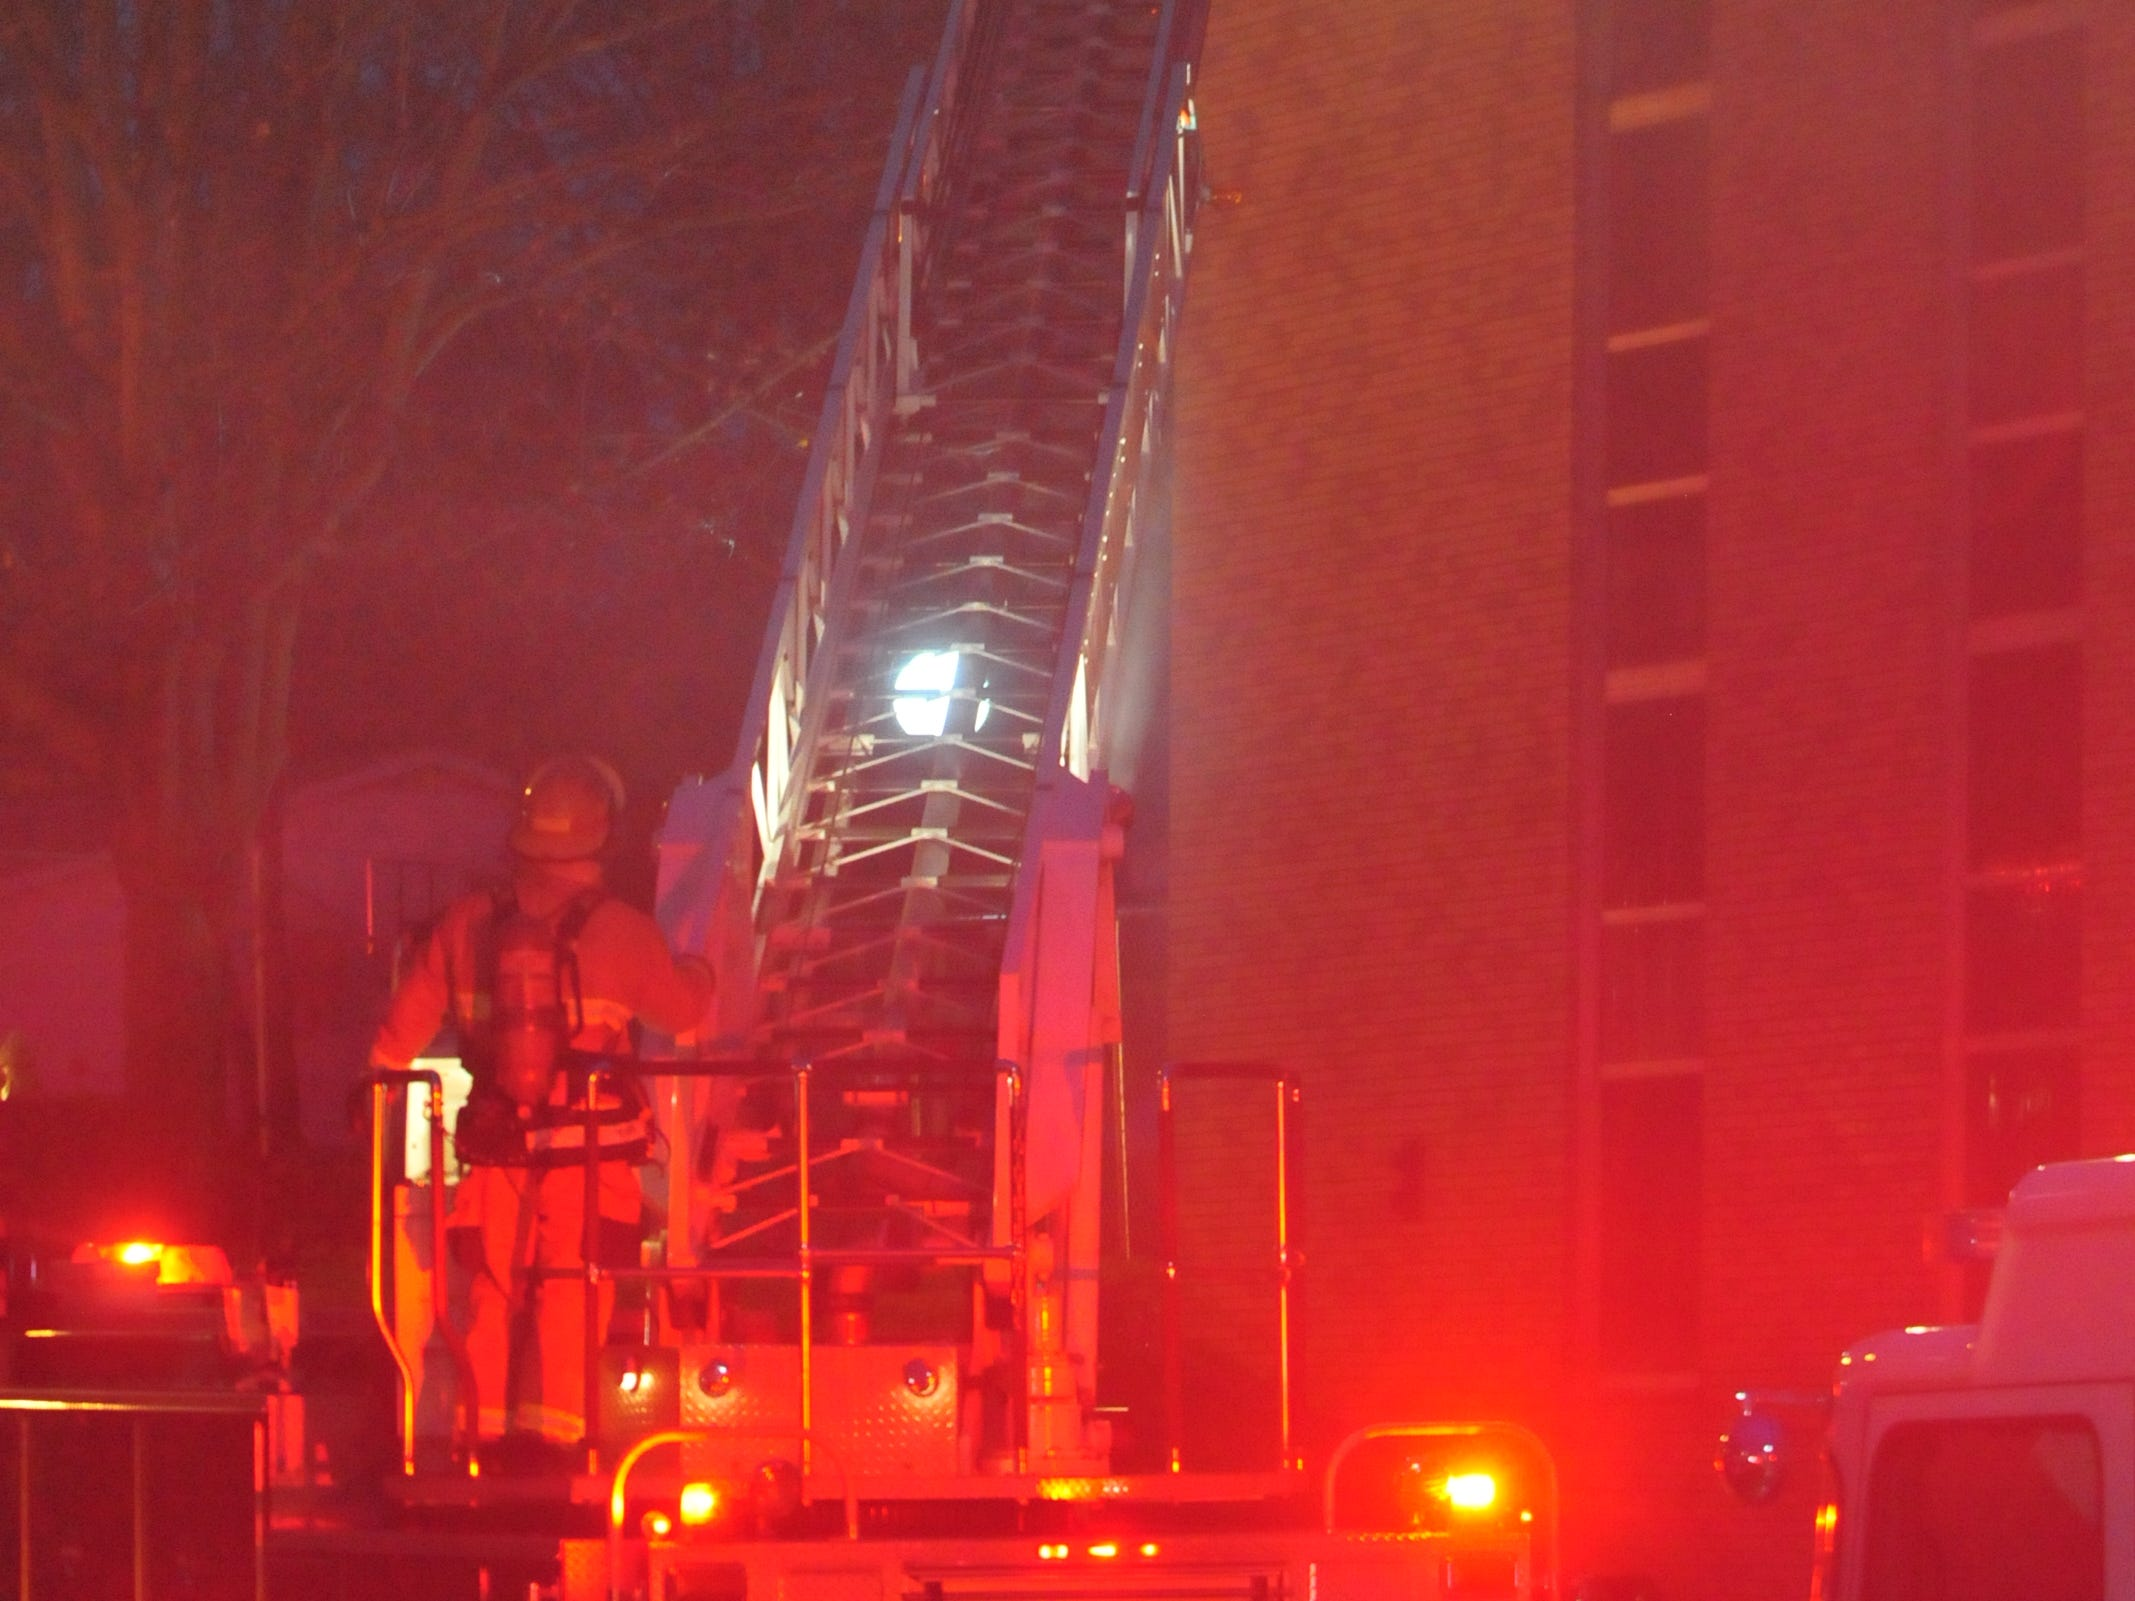 Richmond Fire Department personnel work to extinguish a fire Monday evening at Interfaith Apartments.